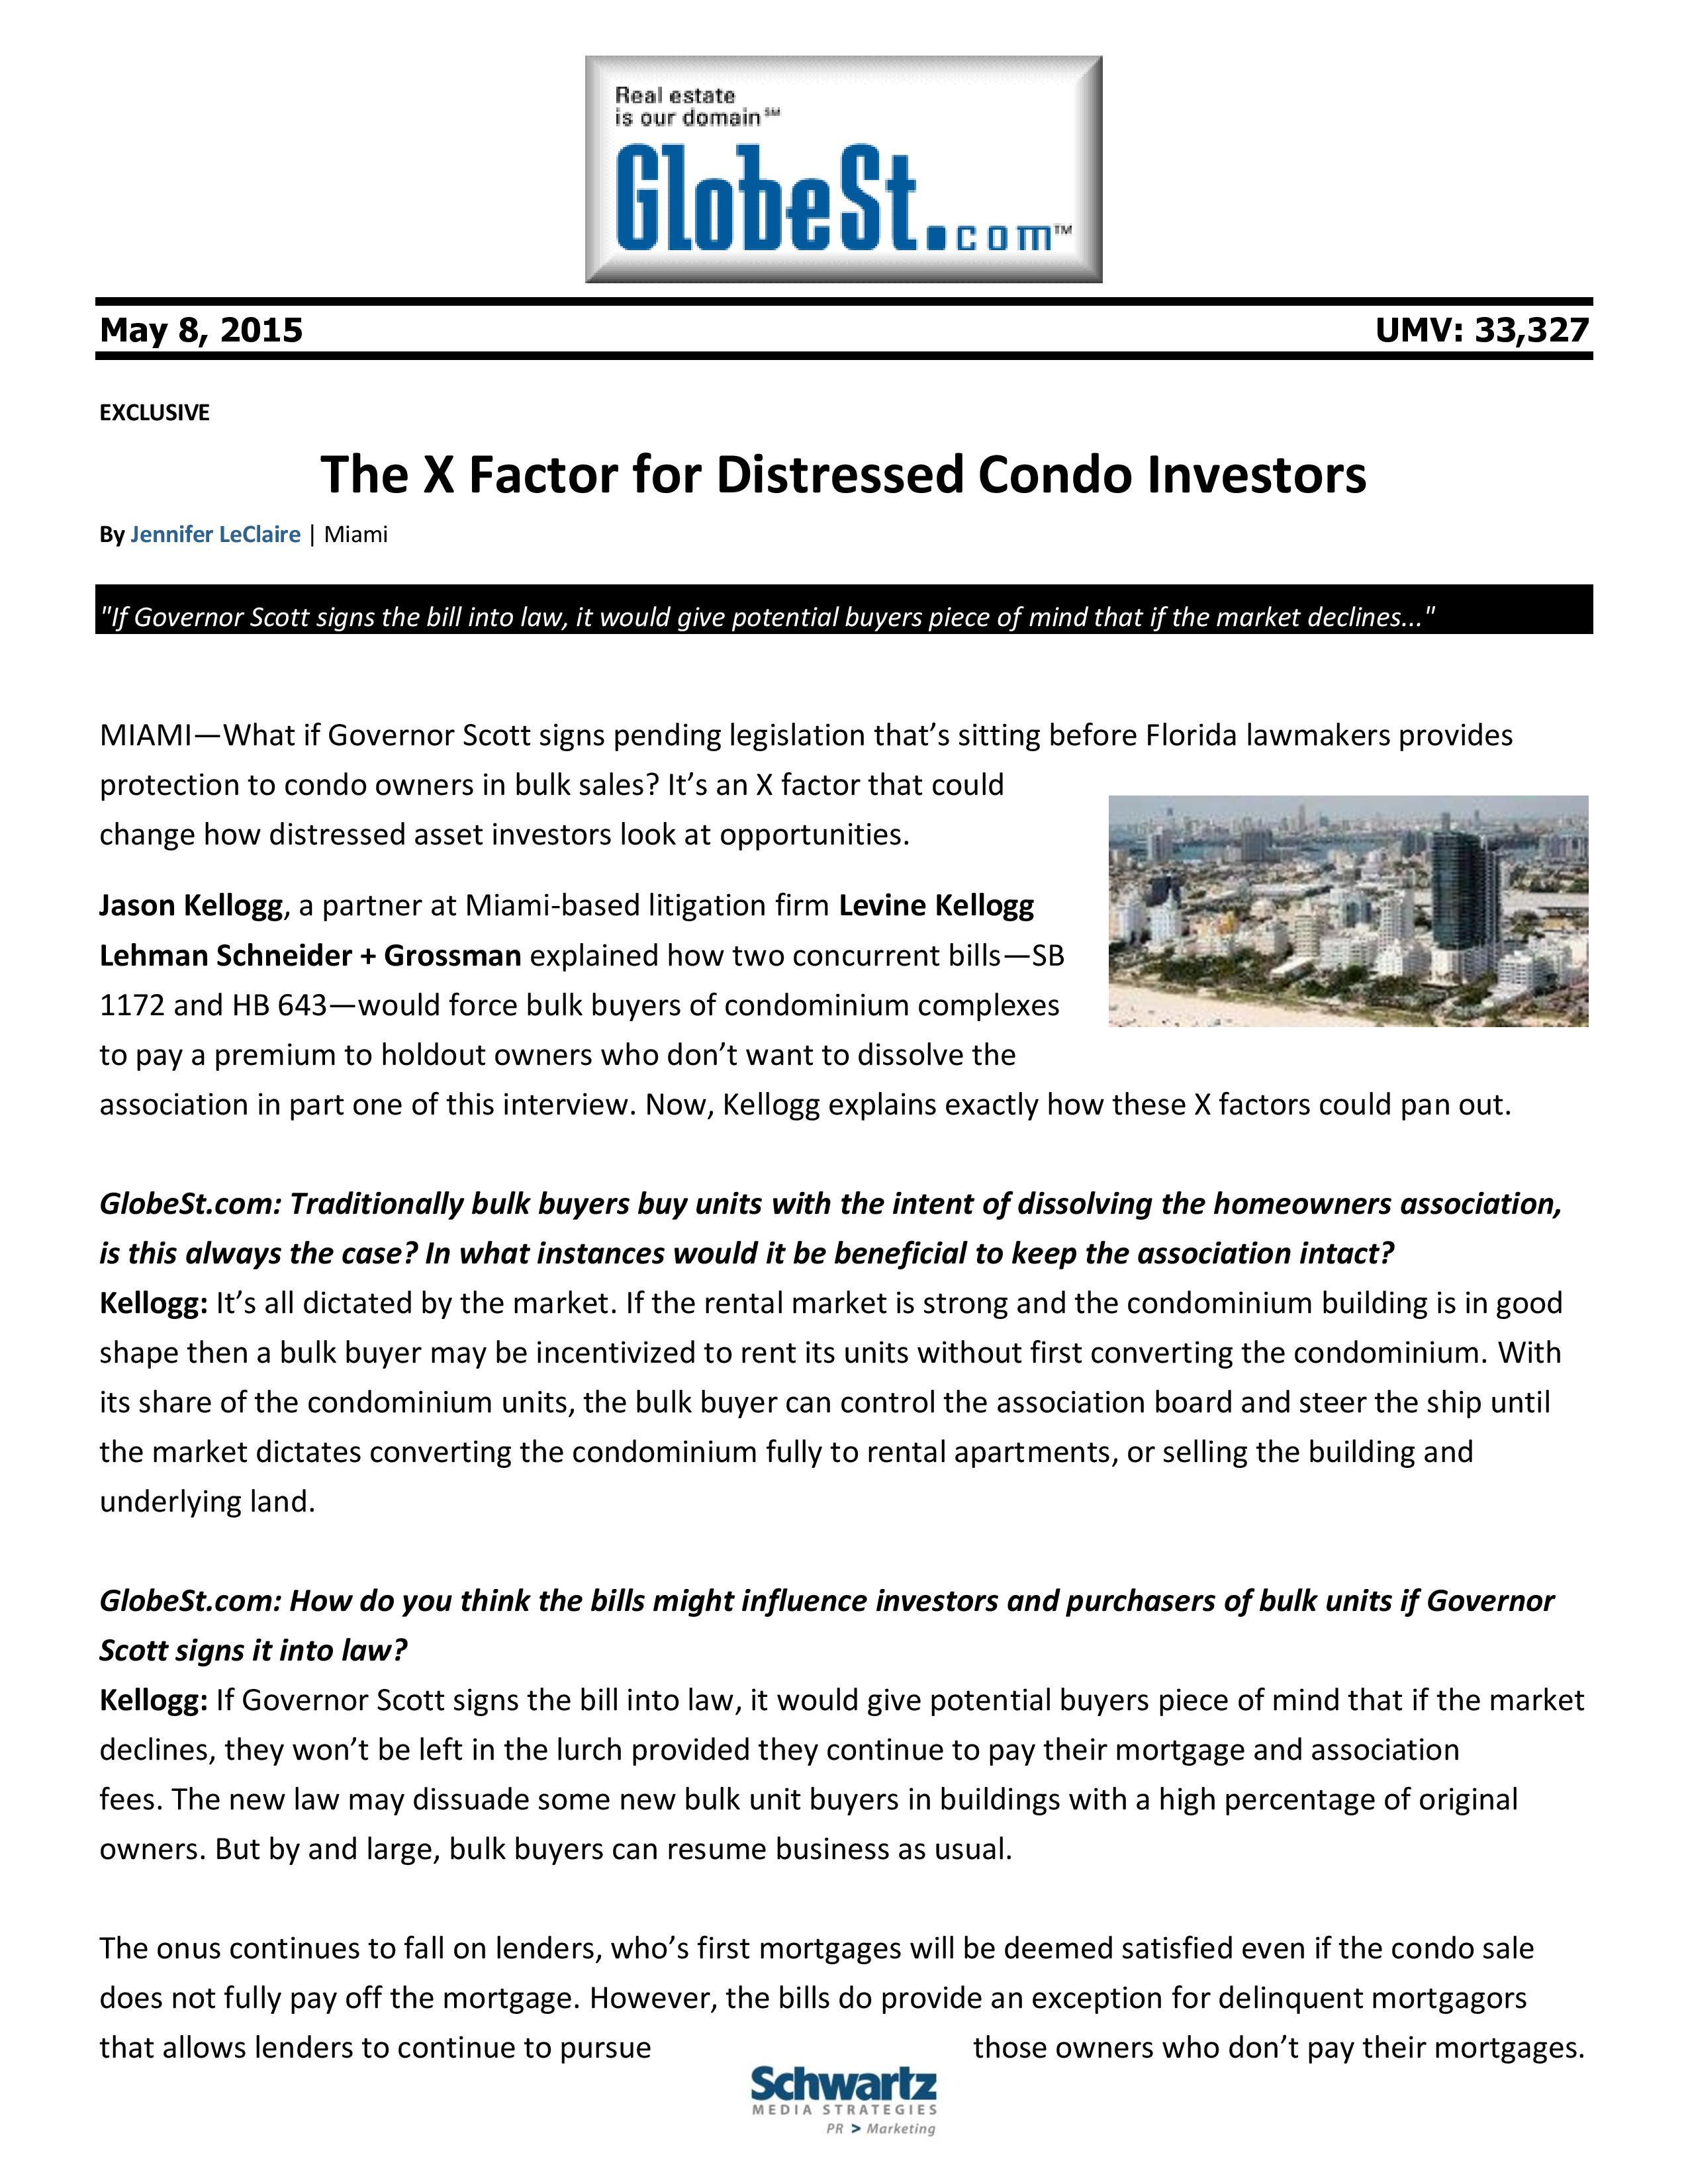 Jason Kellogg Writes About The X Factor For Distressed Condo Owners